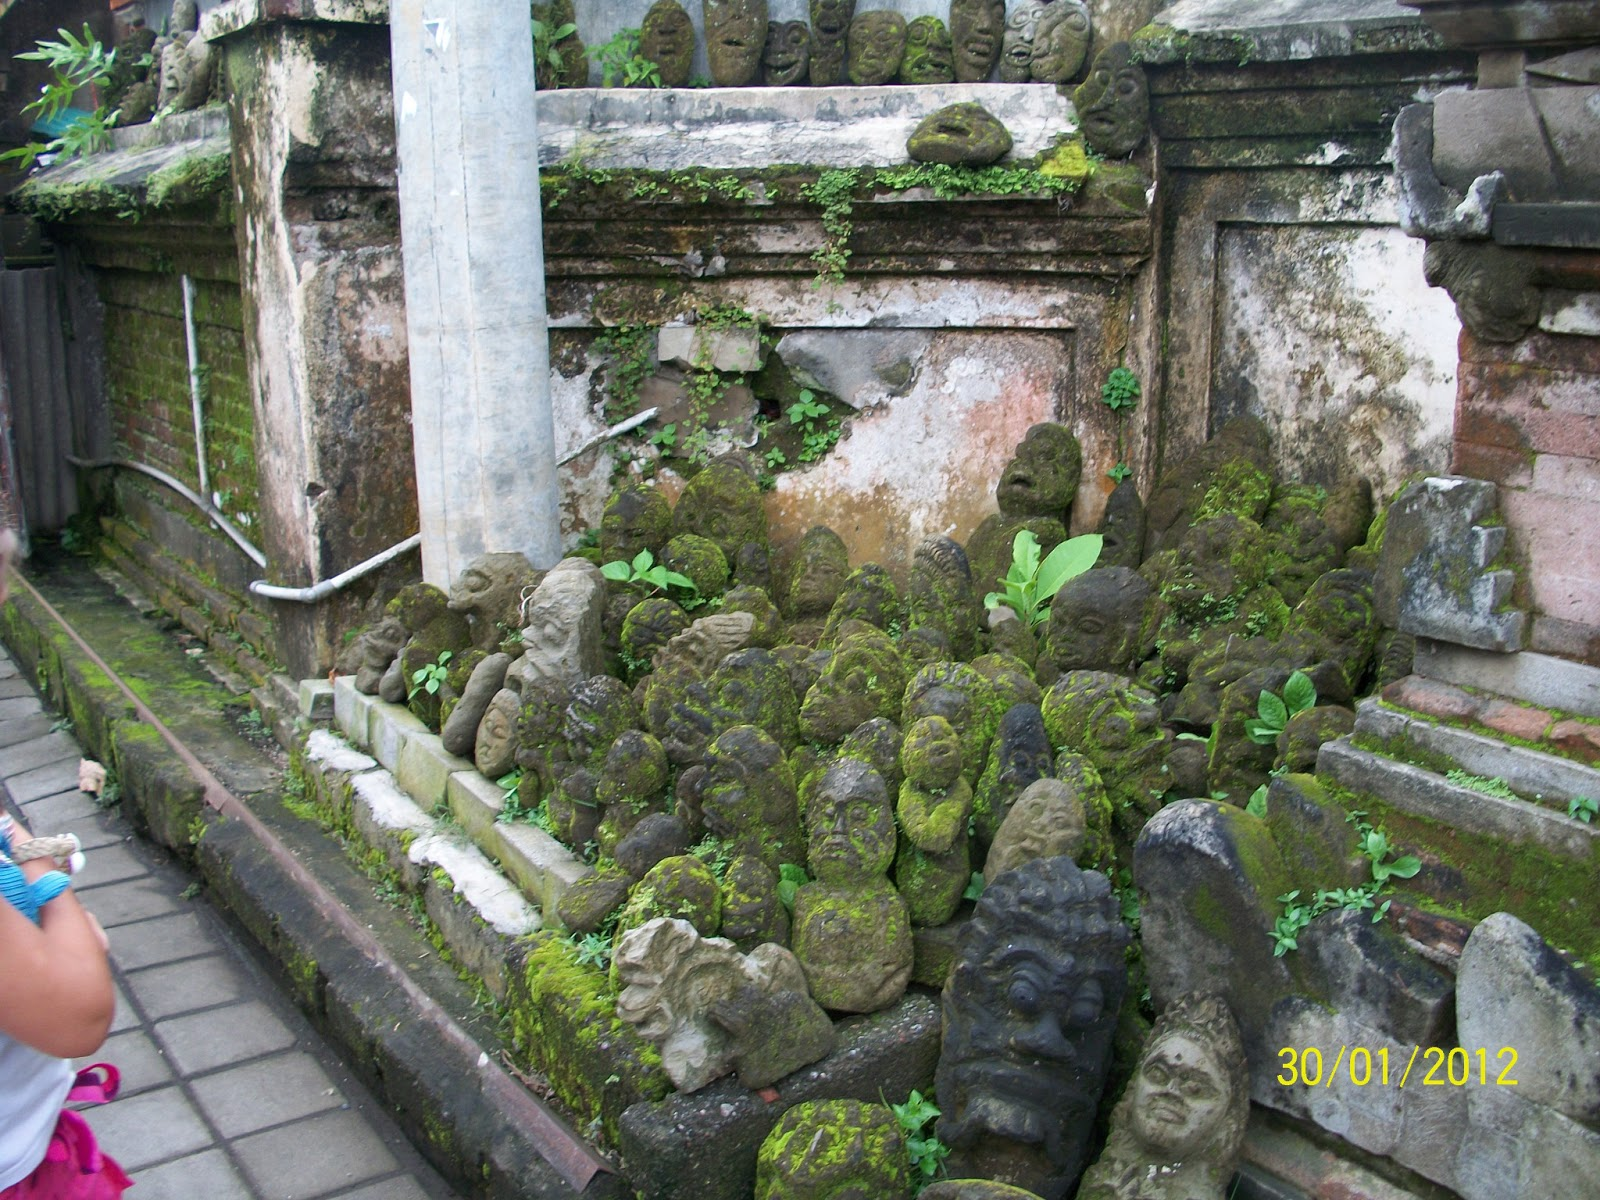 Holiday in bali the island of god amazing places